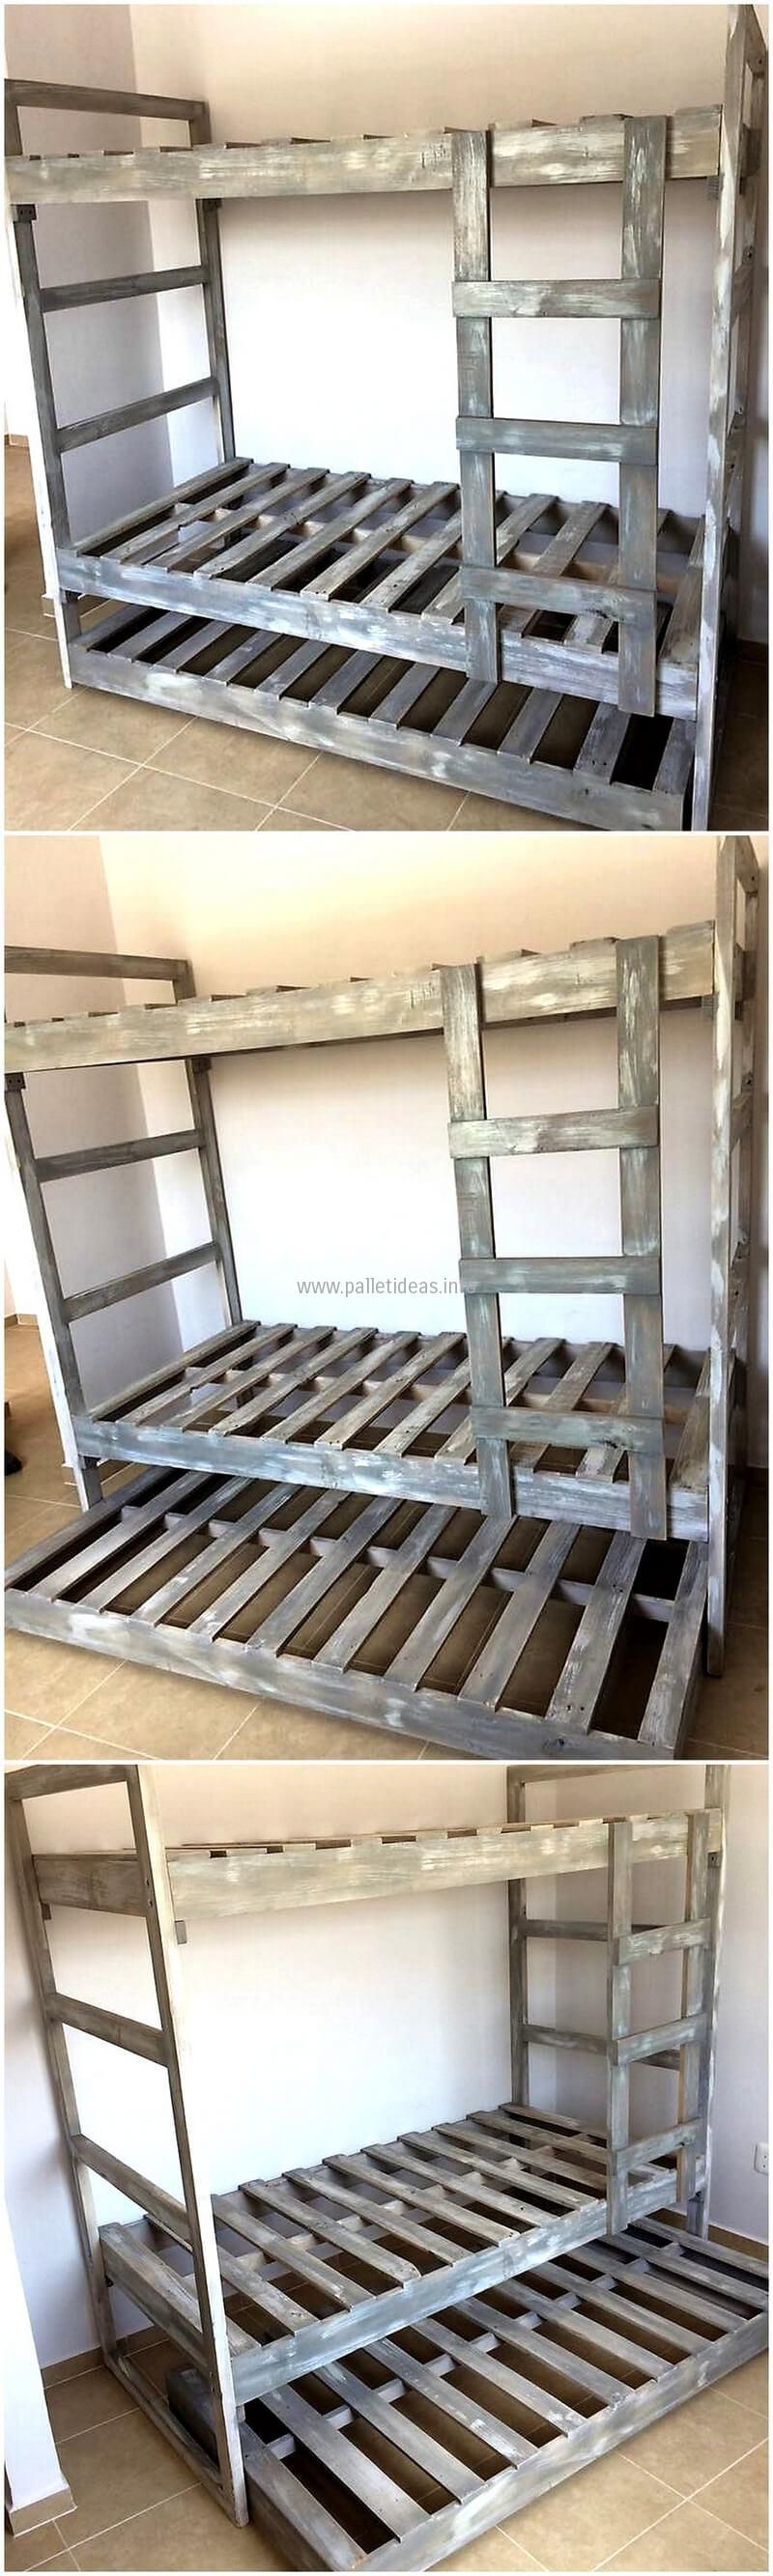 Pallets Wooden Bunk Bed Plan